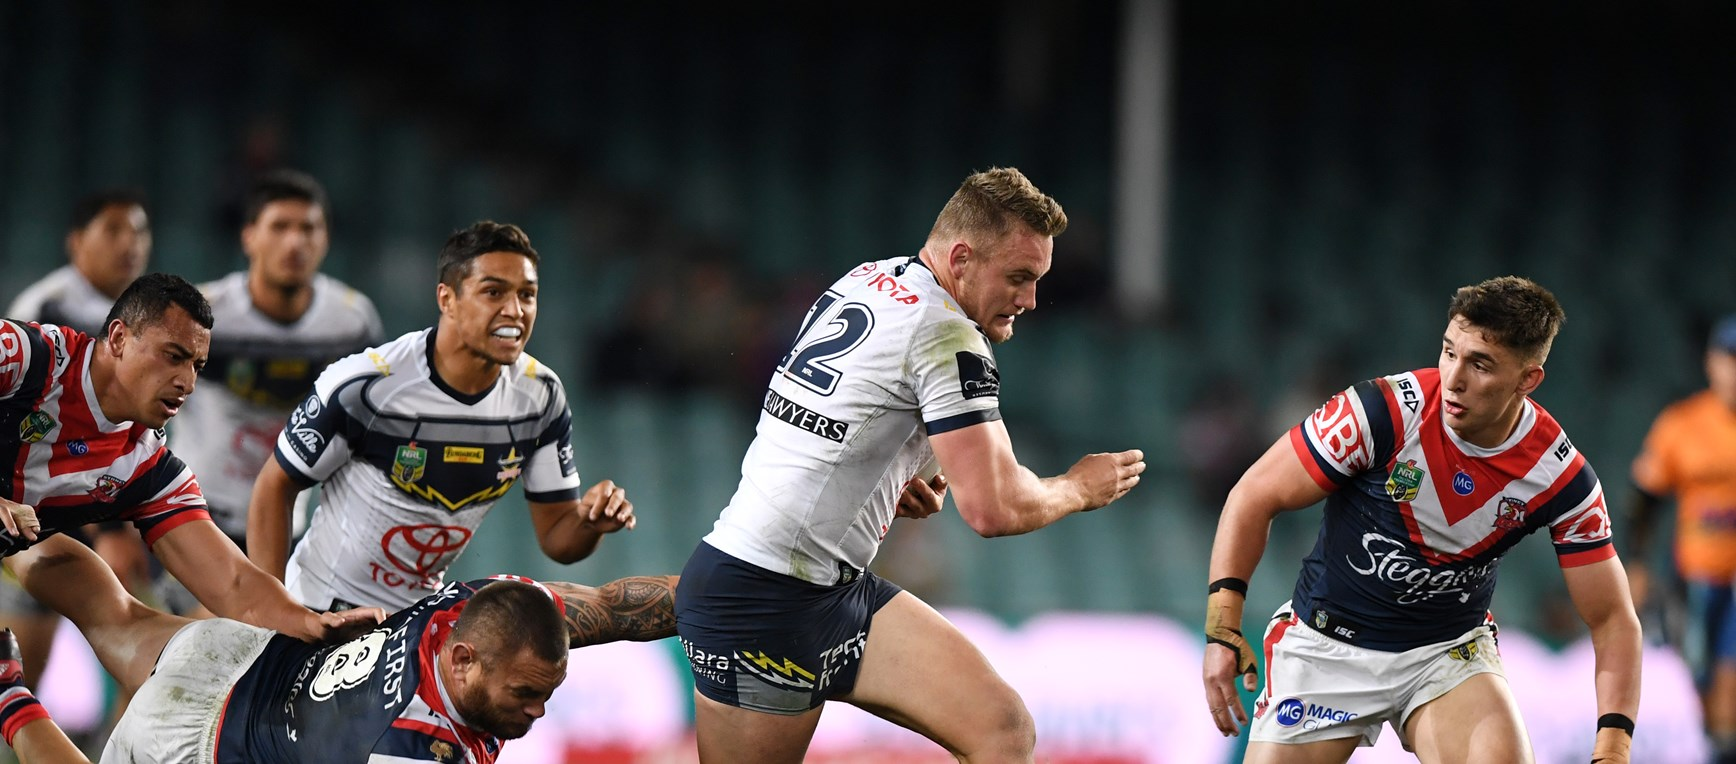 GALLERY: Cowboys v Roosters